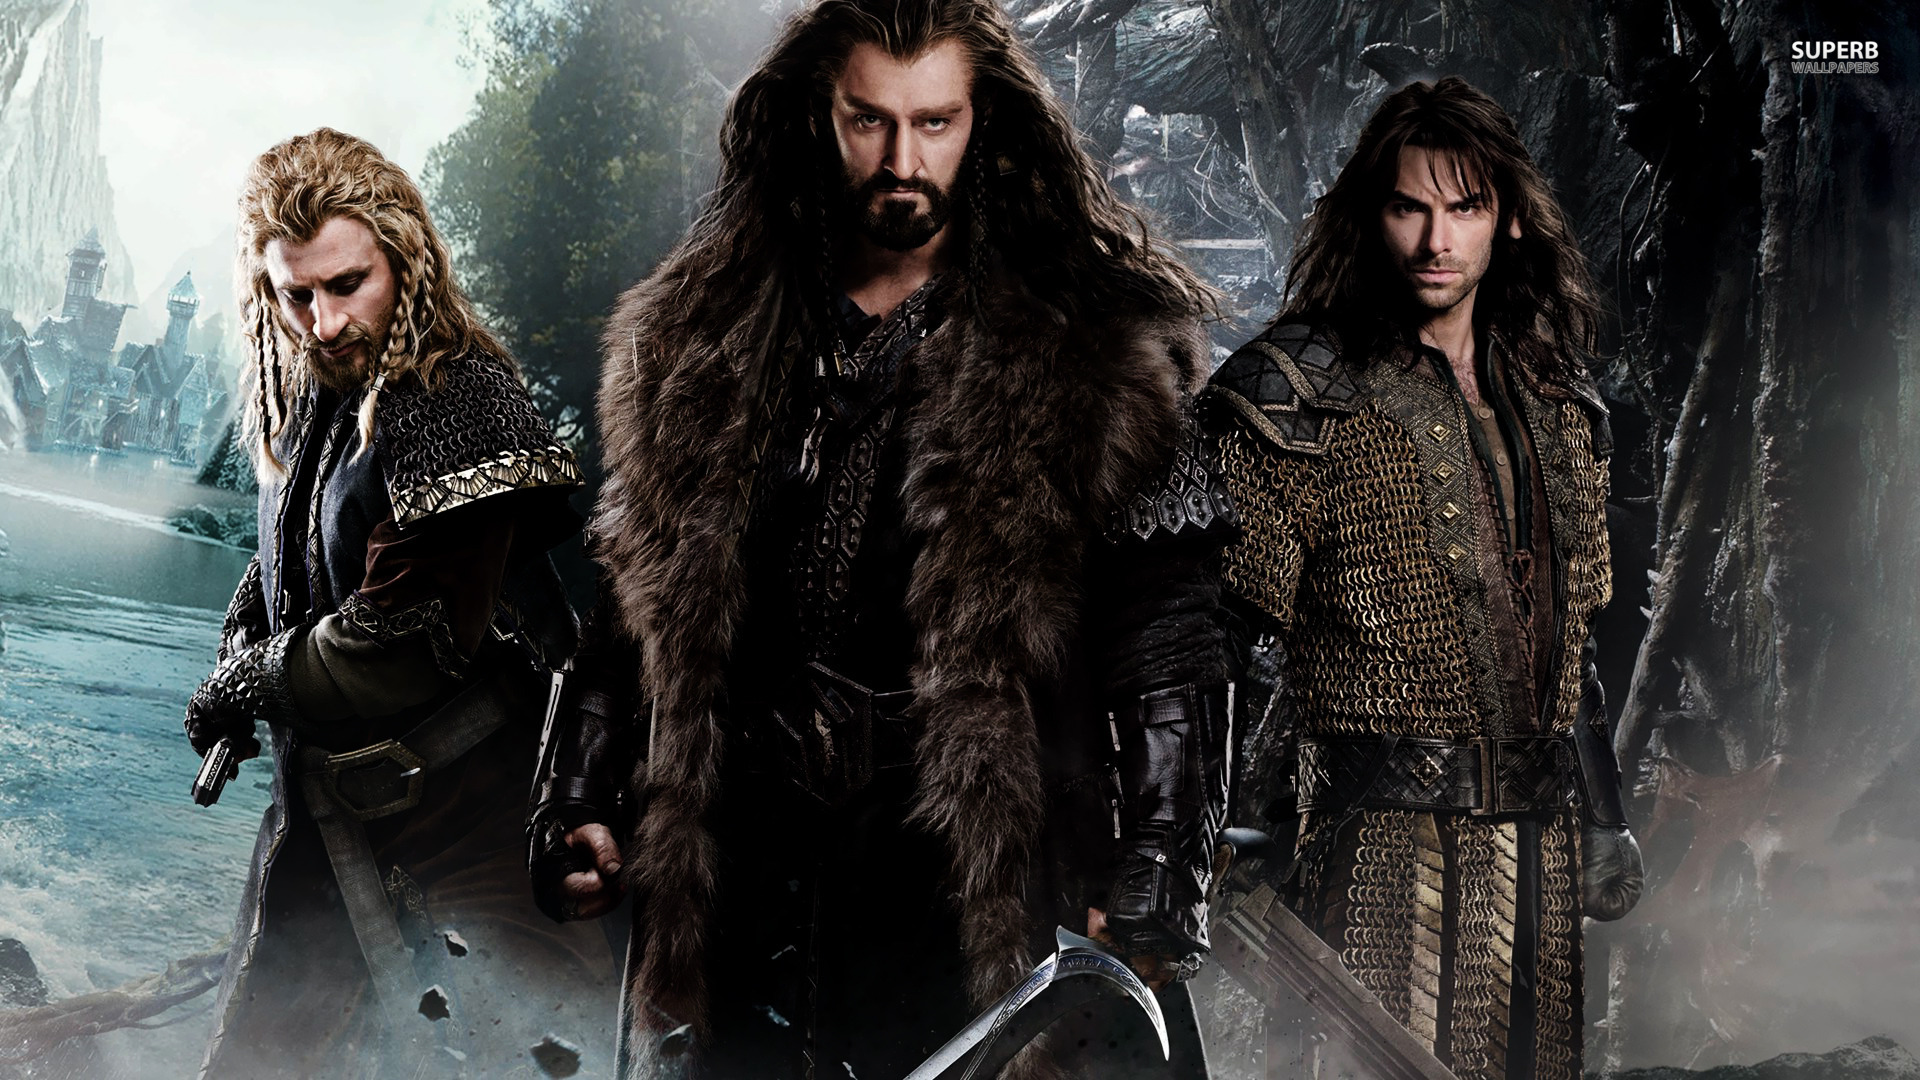 Some of the Warriors from The Hobbit. Picture taken from: walls-world.com